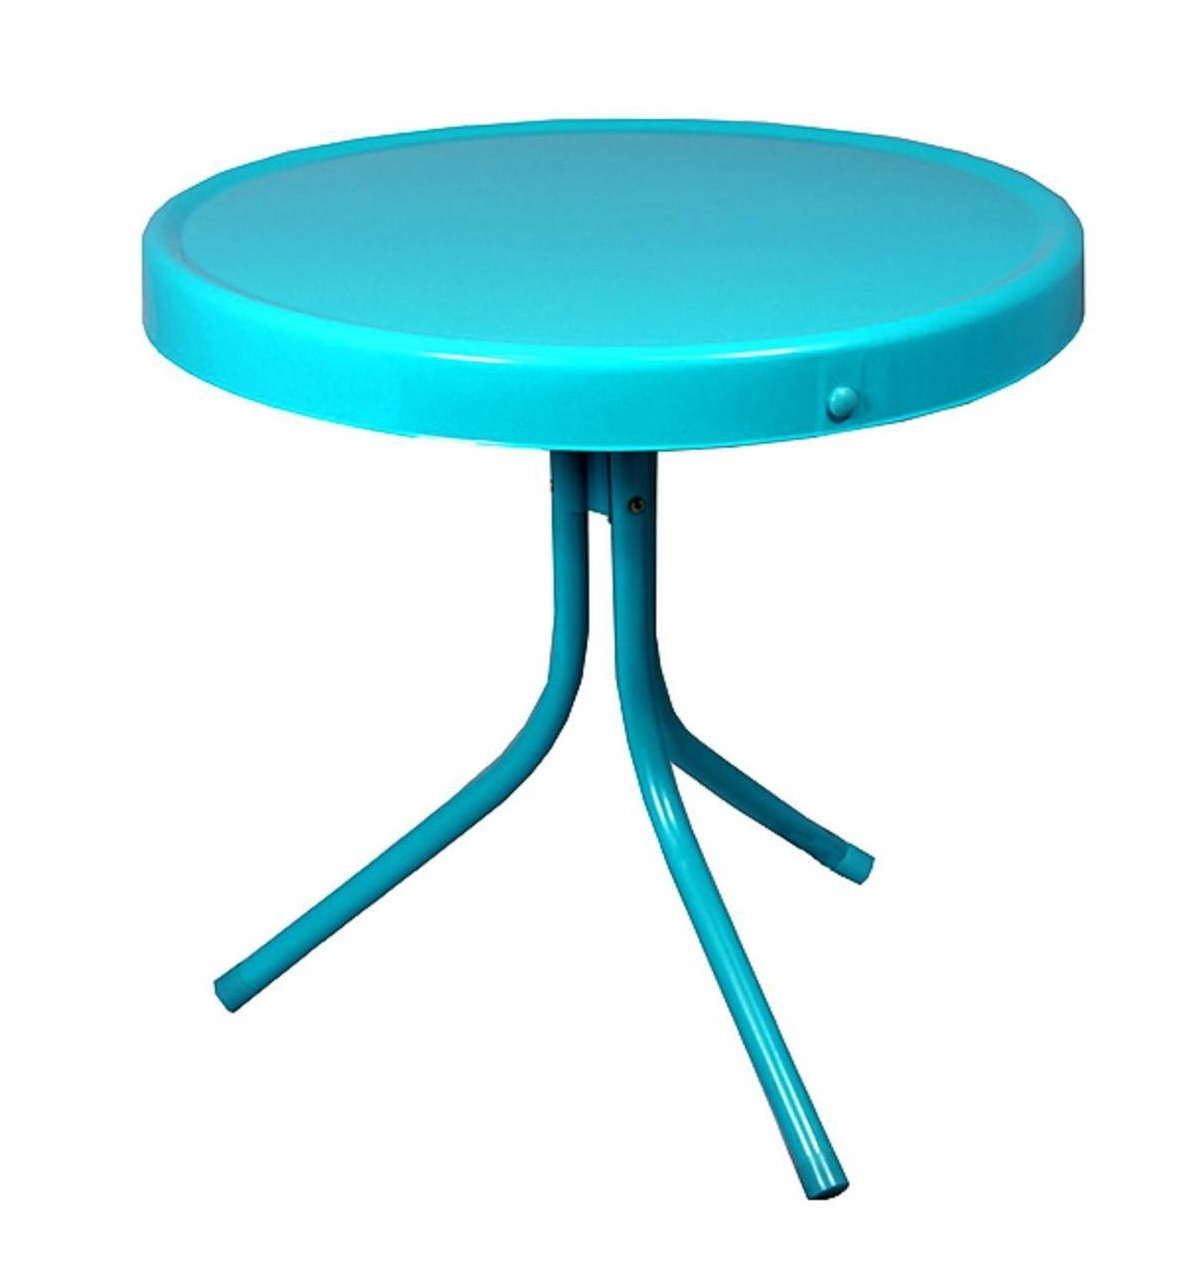 retro metal outdoor side table turquoise blue windrockpier accent tulip sofa with matching end tables small rectangular patio half circle kitchen chair and ott hairpin counter